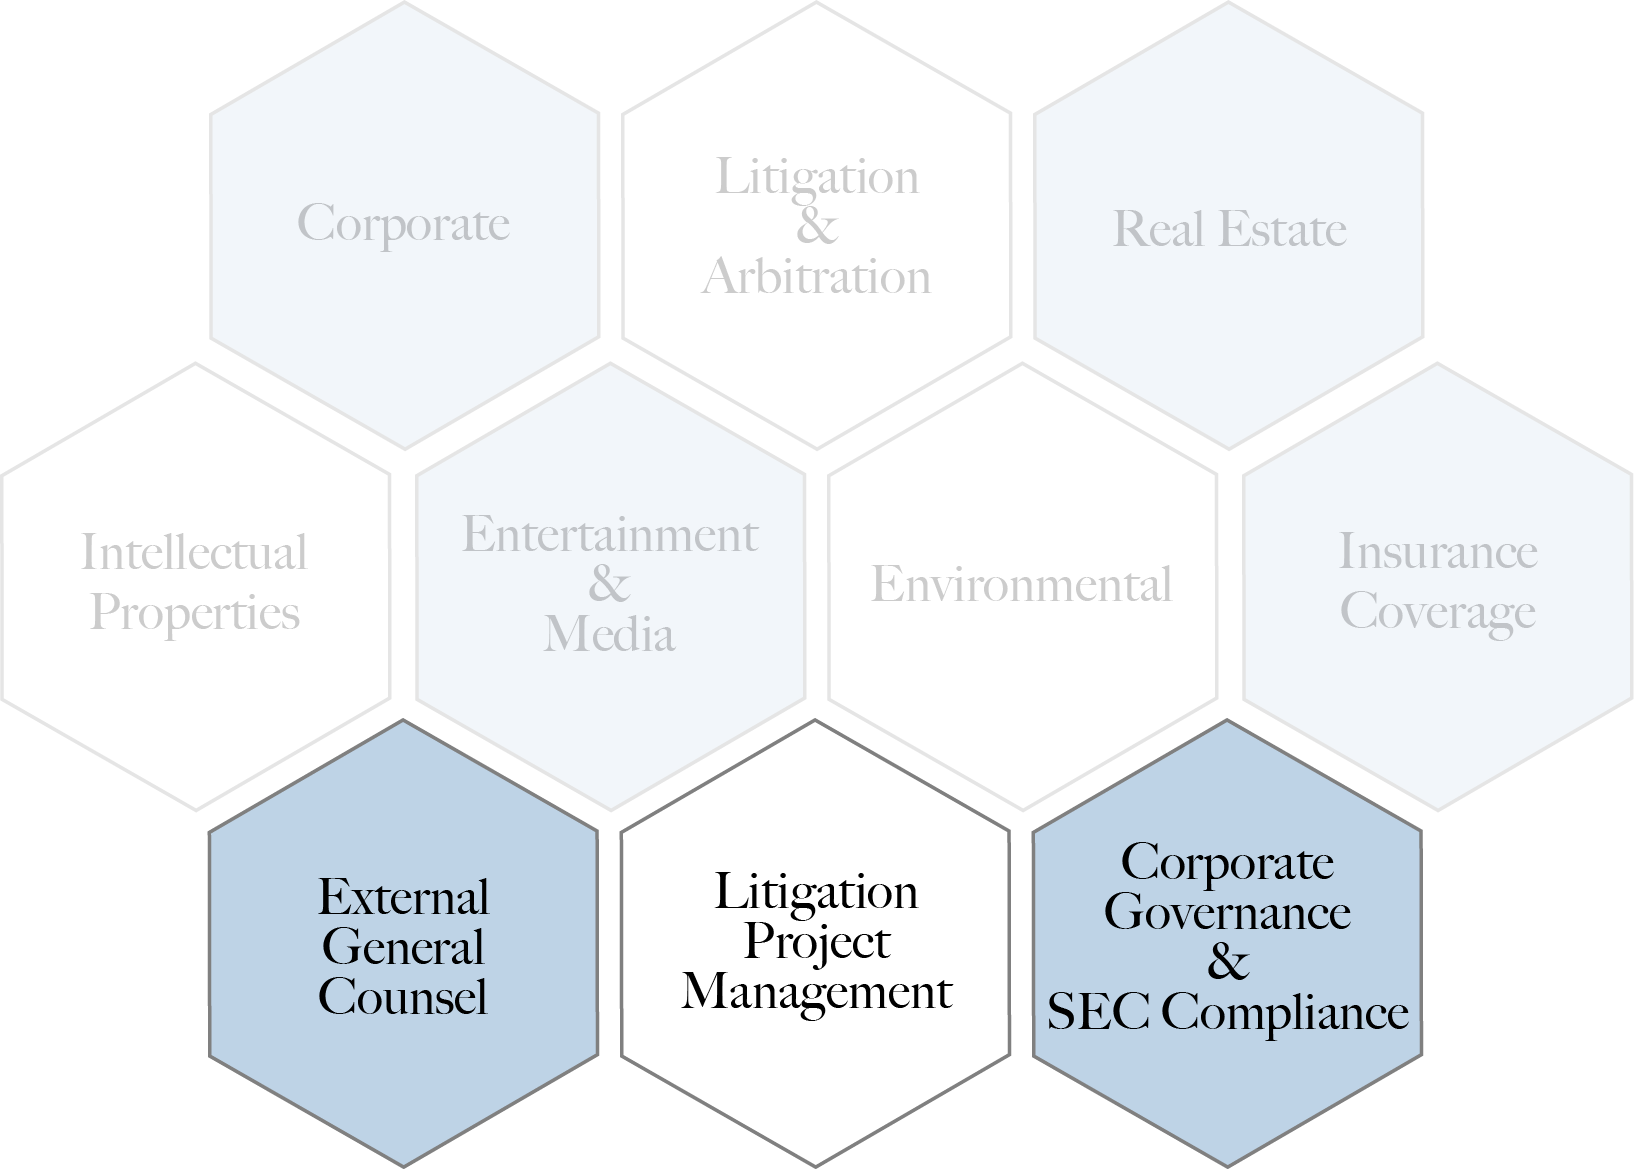 the external general counsel services we offer